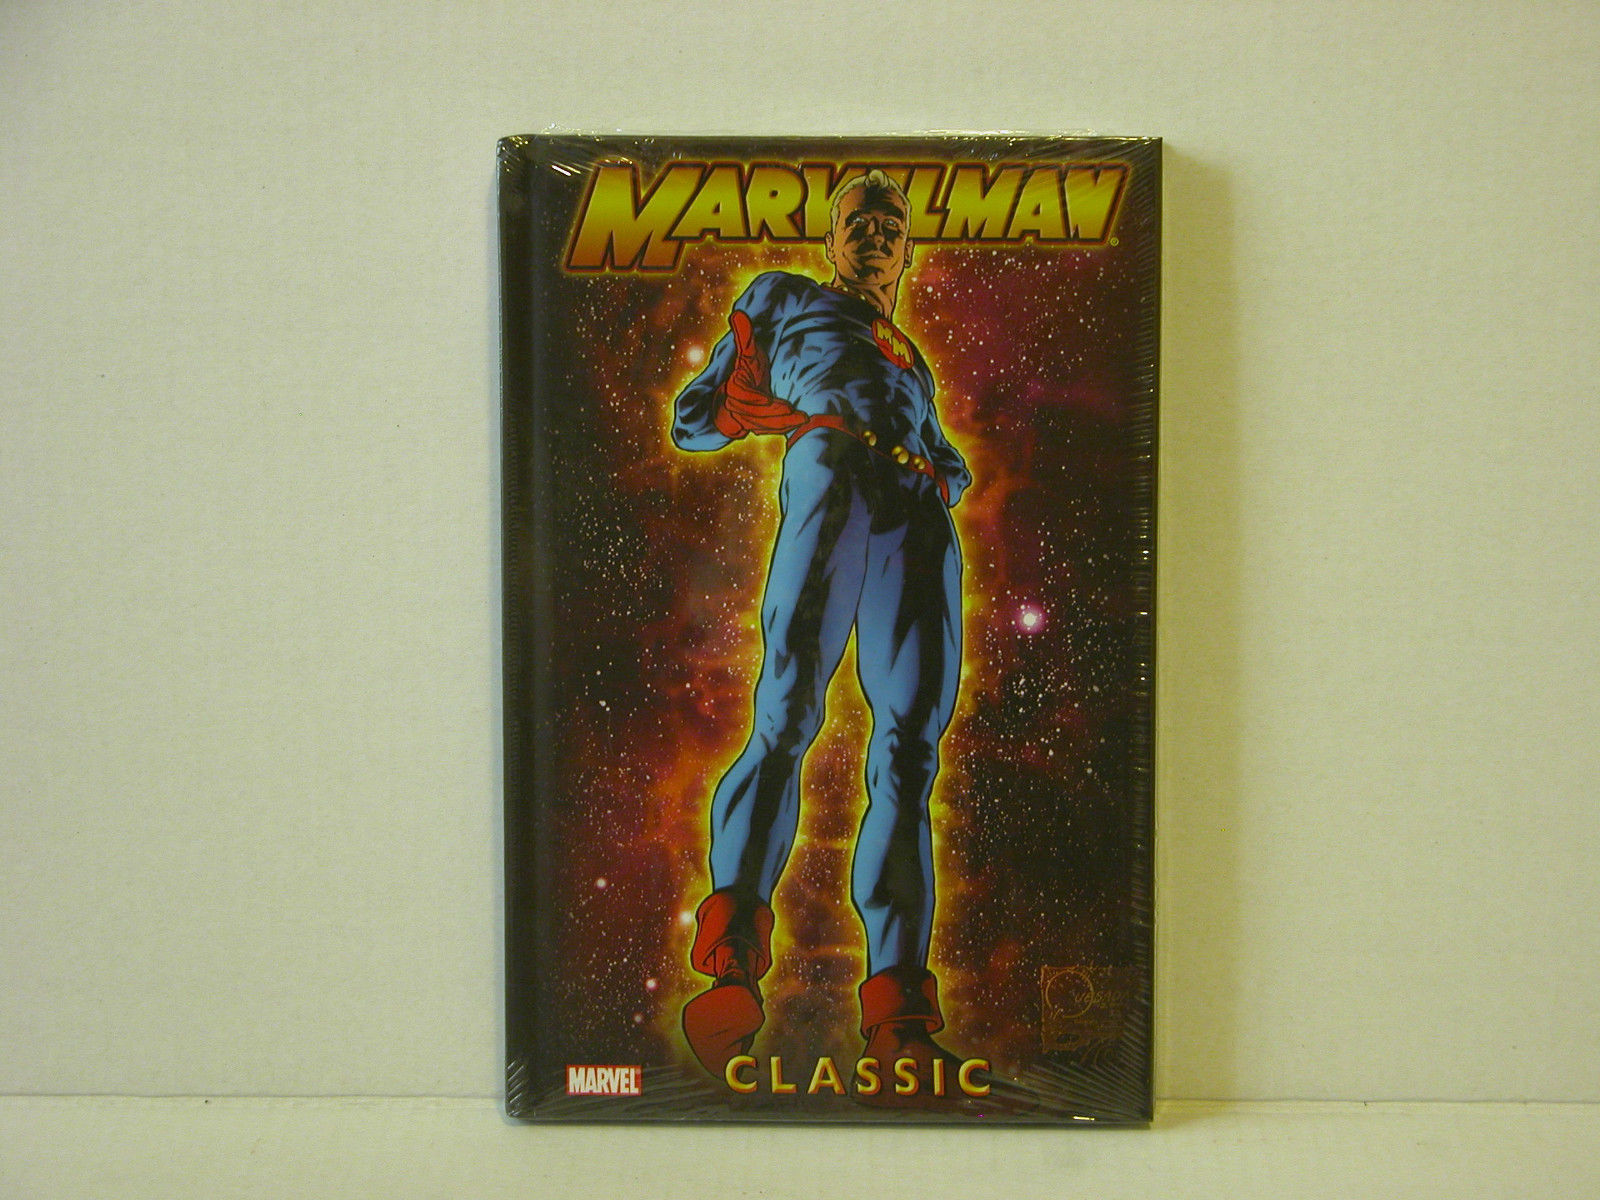 Primary image for MARVEL MAN - CLASSIC - HARD COVER GRAPHIC NOVEL - FREE SHIPPING